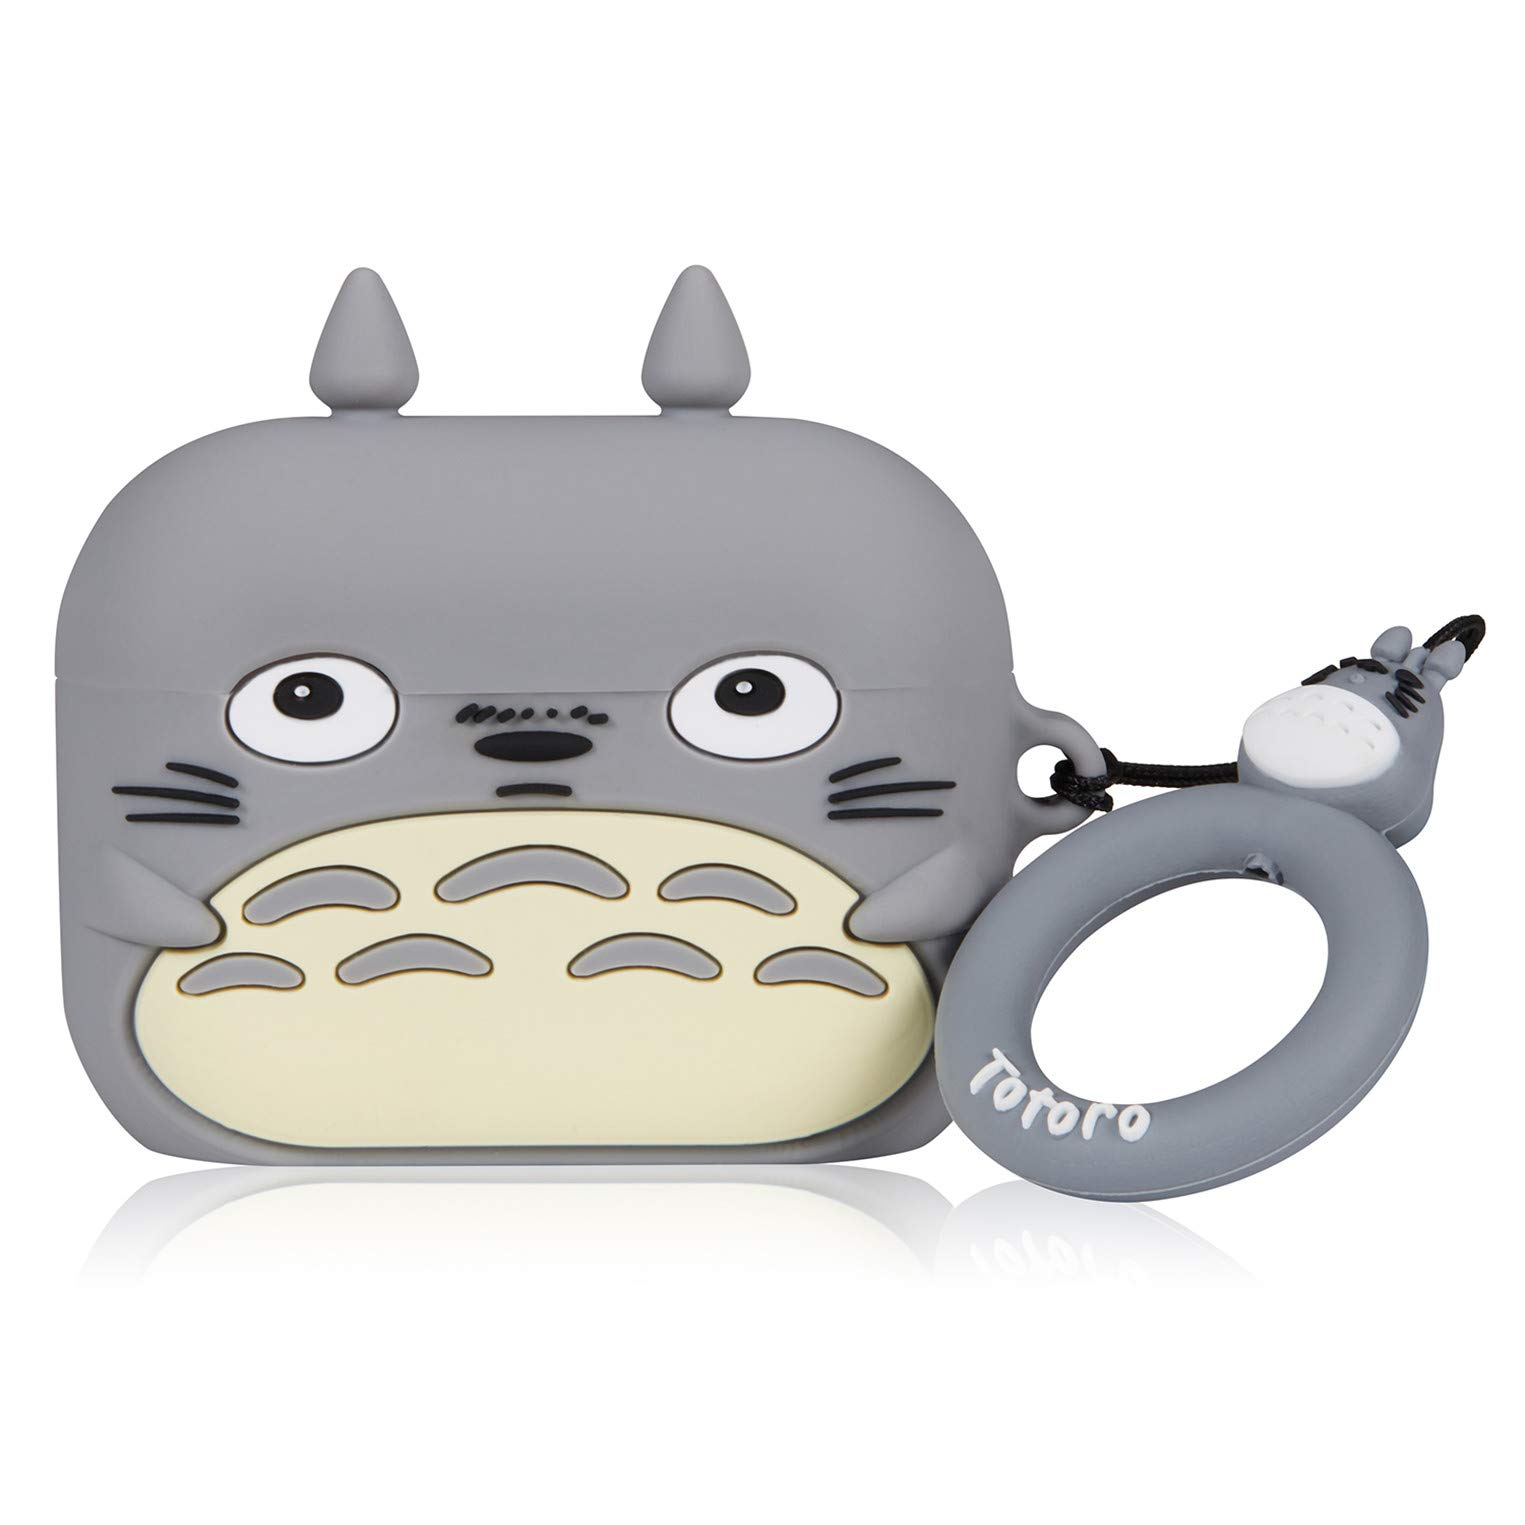 Gift-Hero Classic Totoro Case for Airpods Pro/for Airpods 3, Cartoon Cute Funny Design for Girls Boys Kids, Unique Carabiner Protective Fun Fashion Character Skin Soft Silicone Cover for Air pods 3